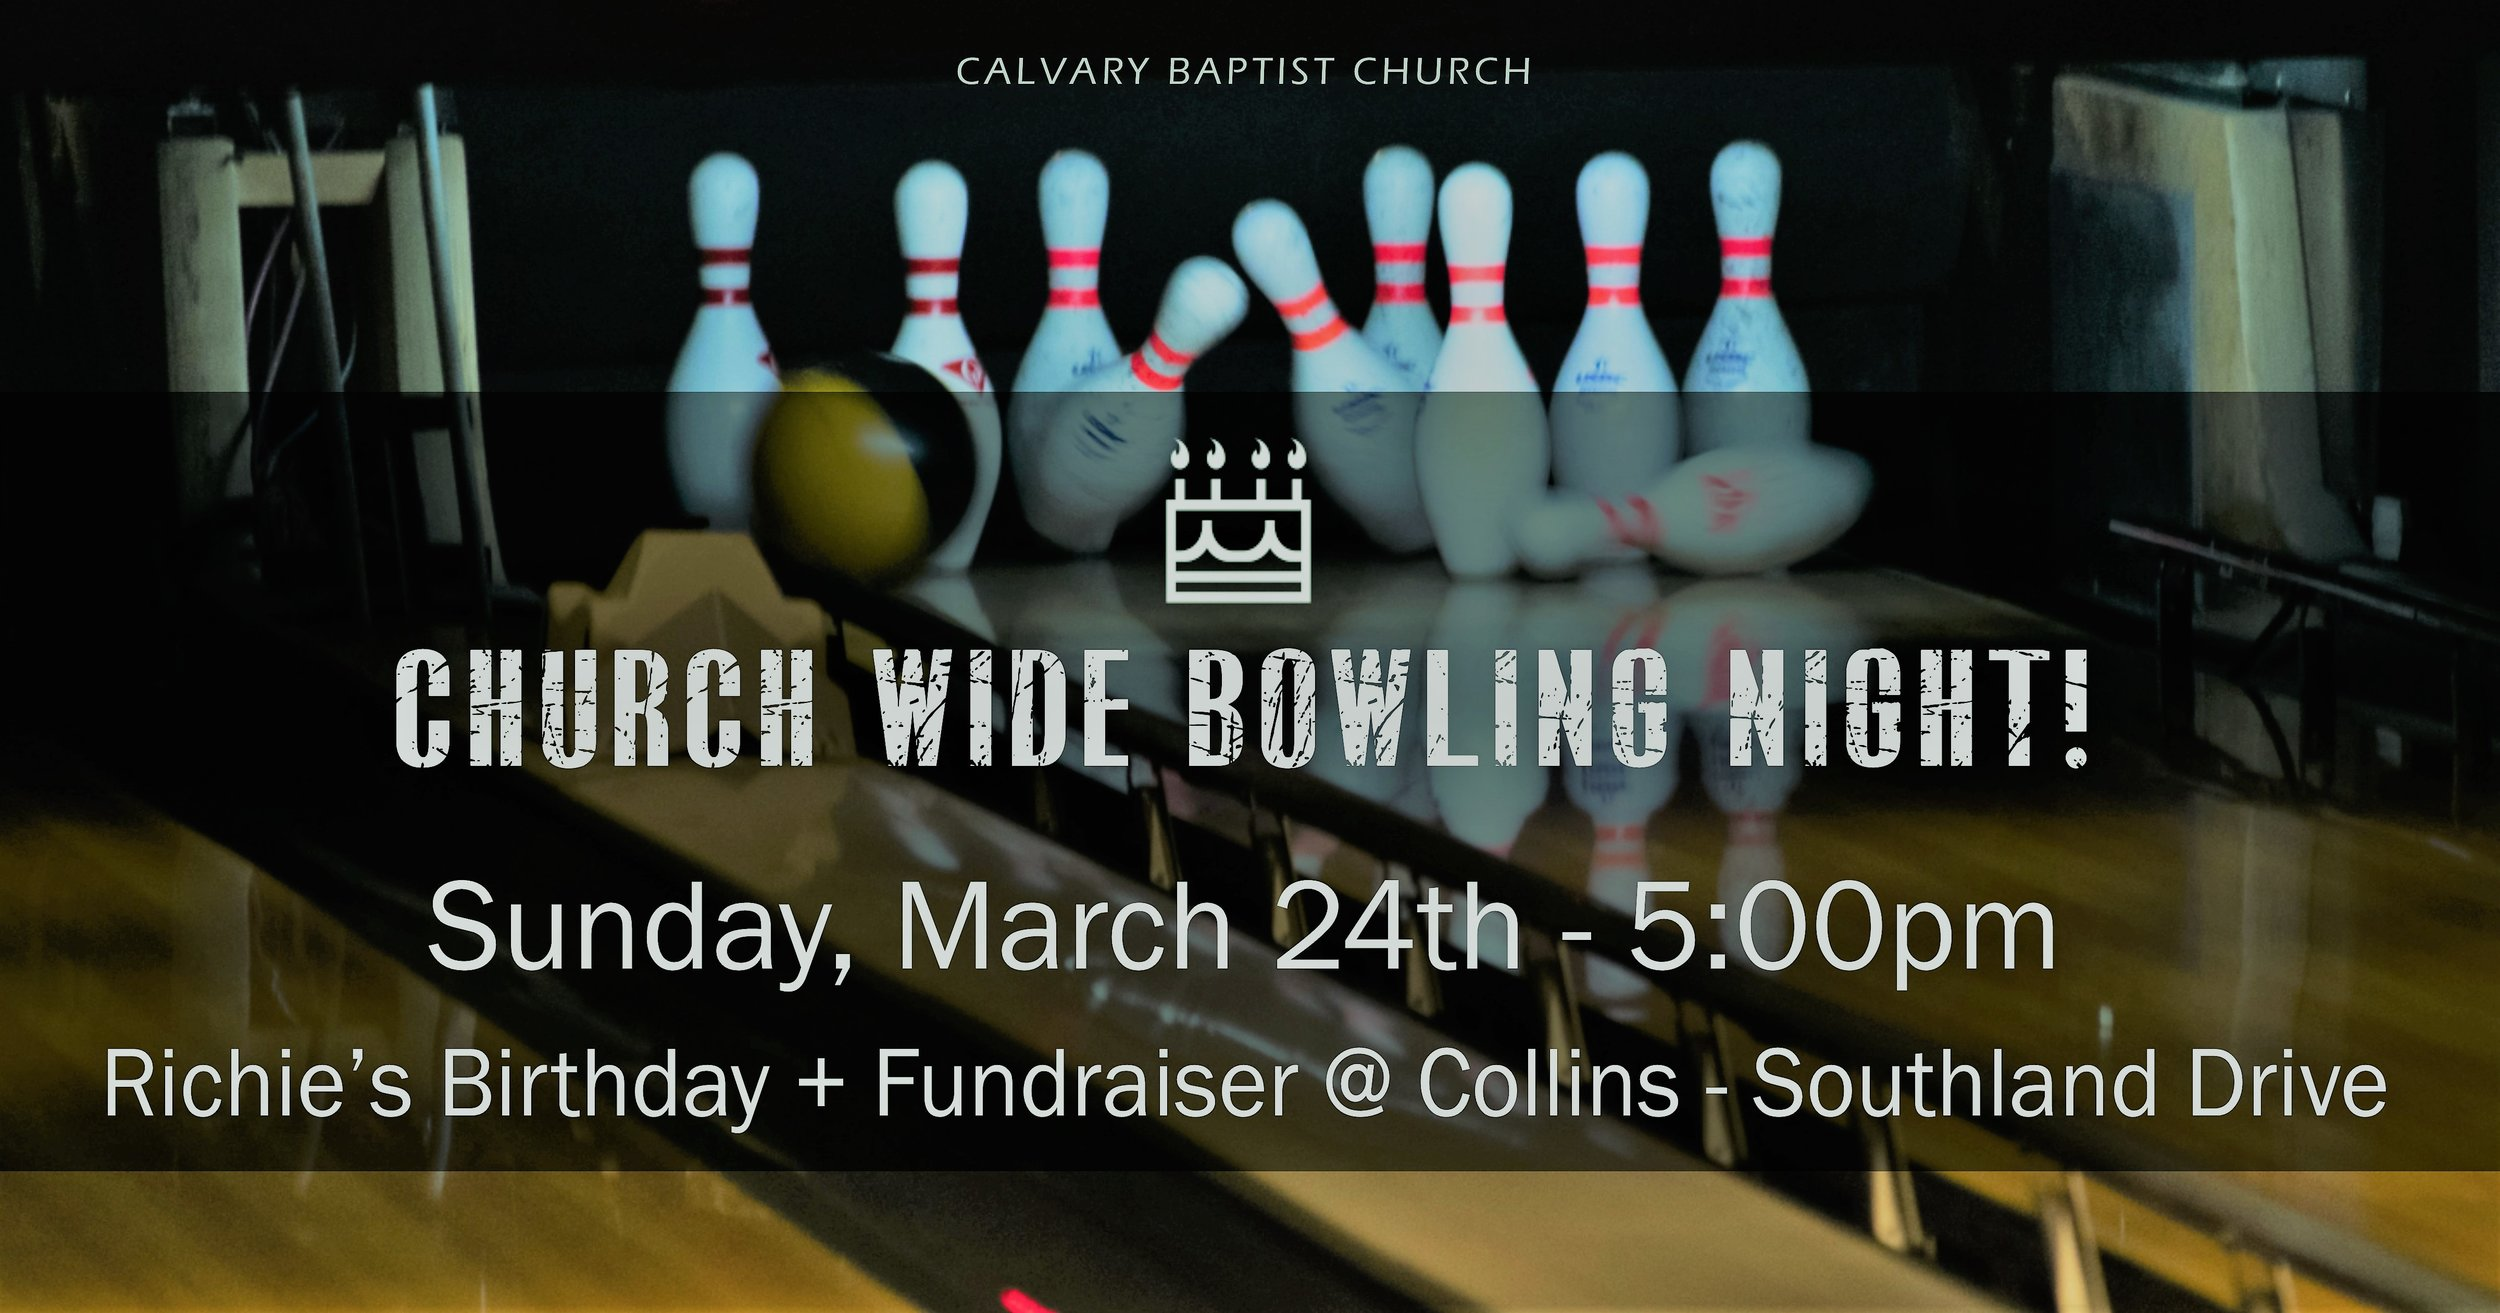 Bowling for Ritchie Facebook  022019.jpg